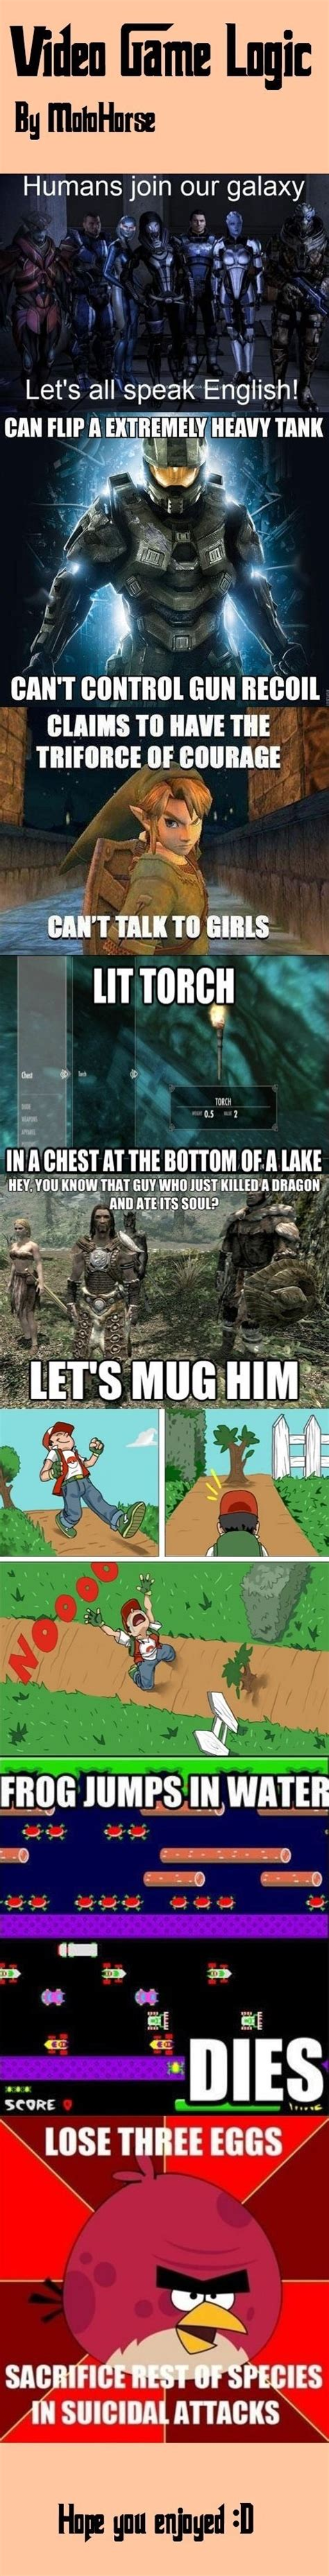 Funny Video Game Meme - funny memes about video games memes